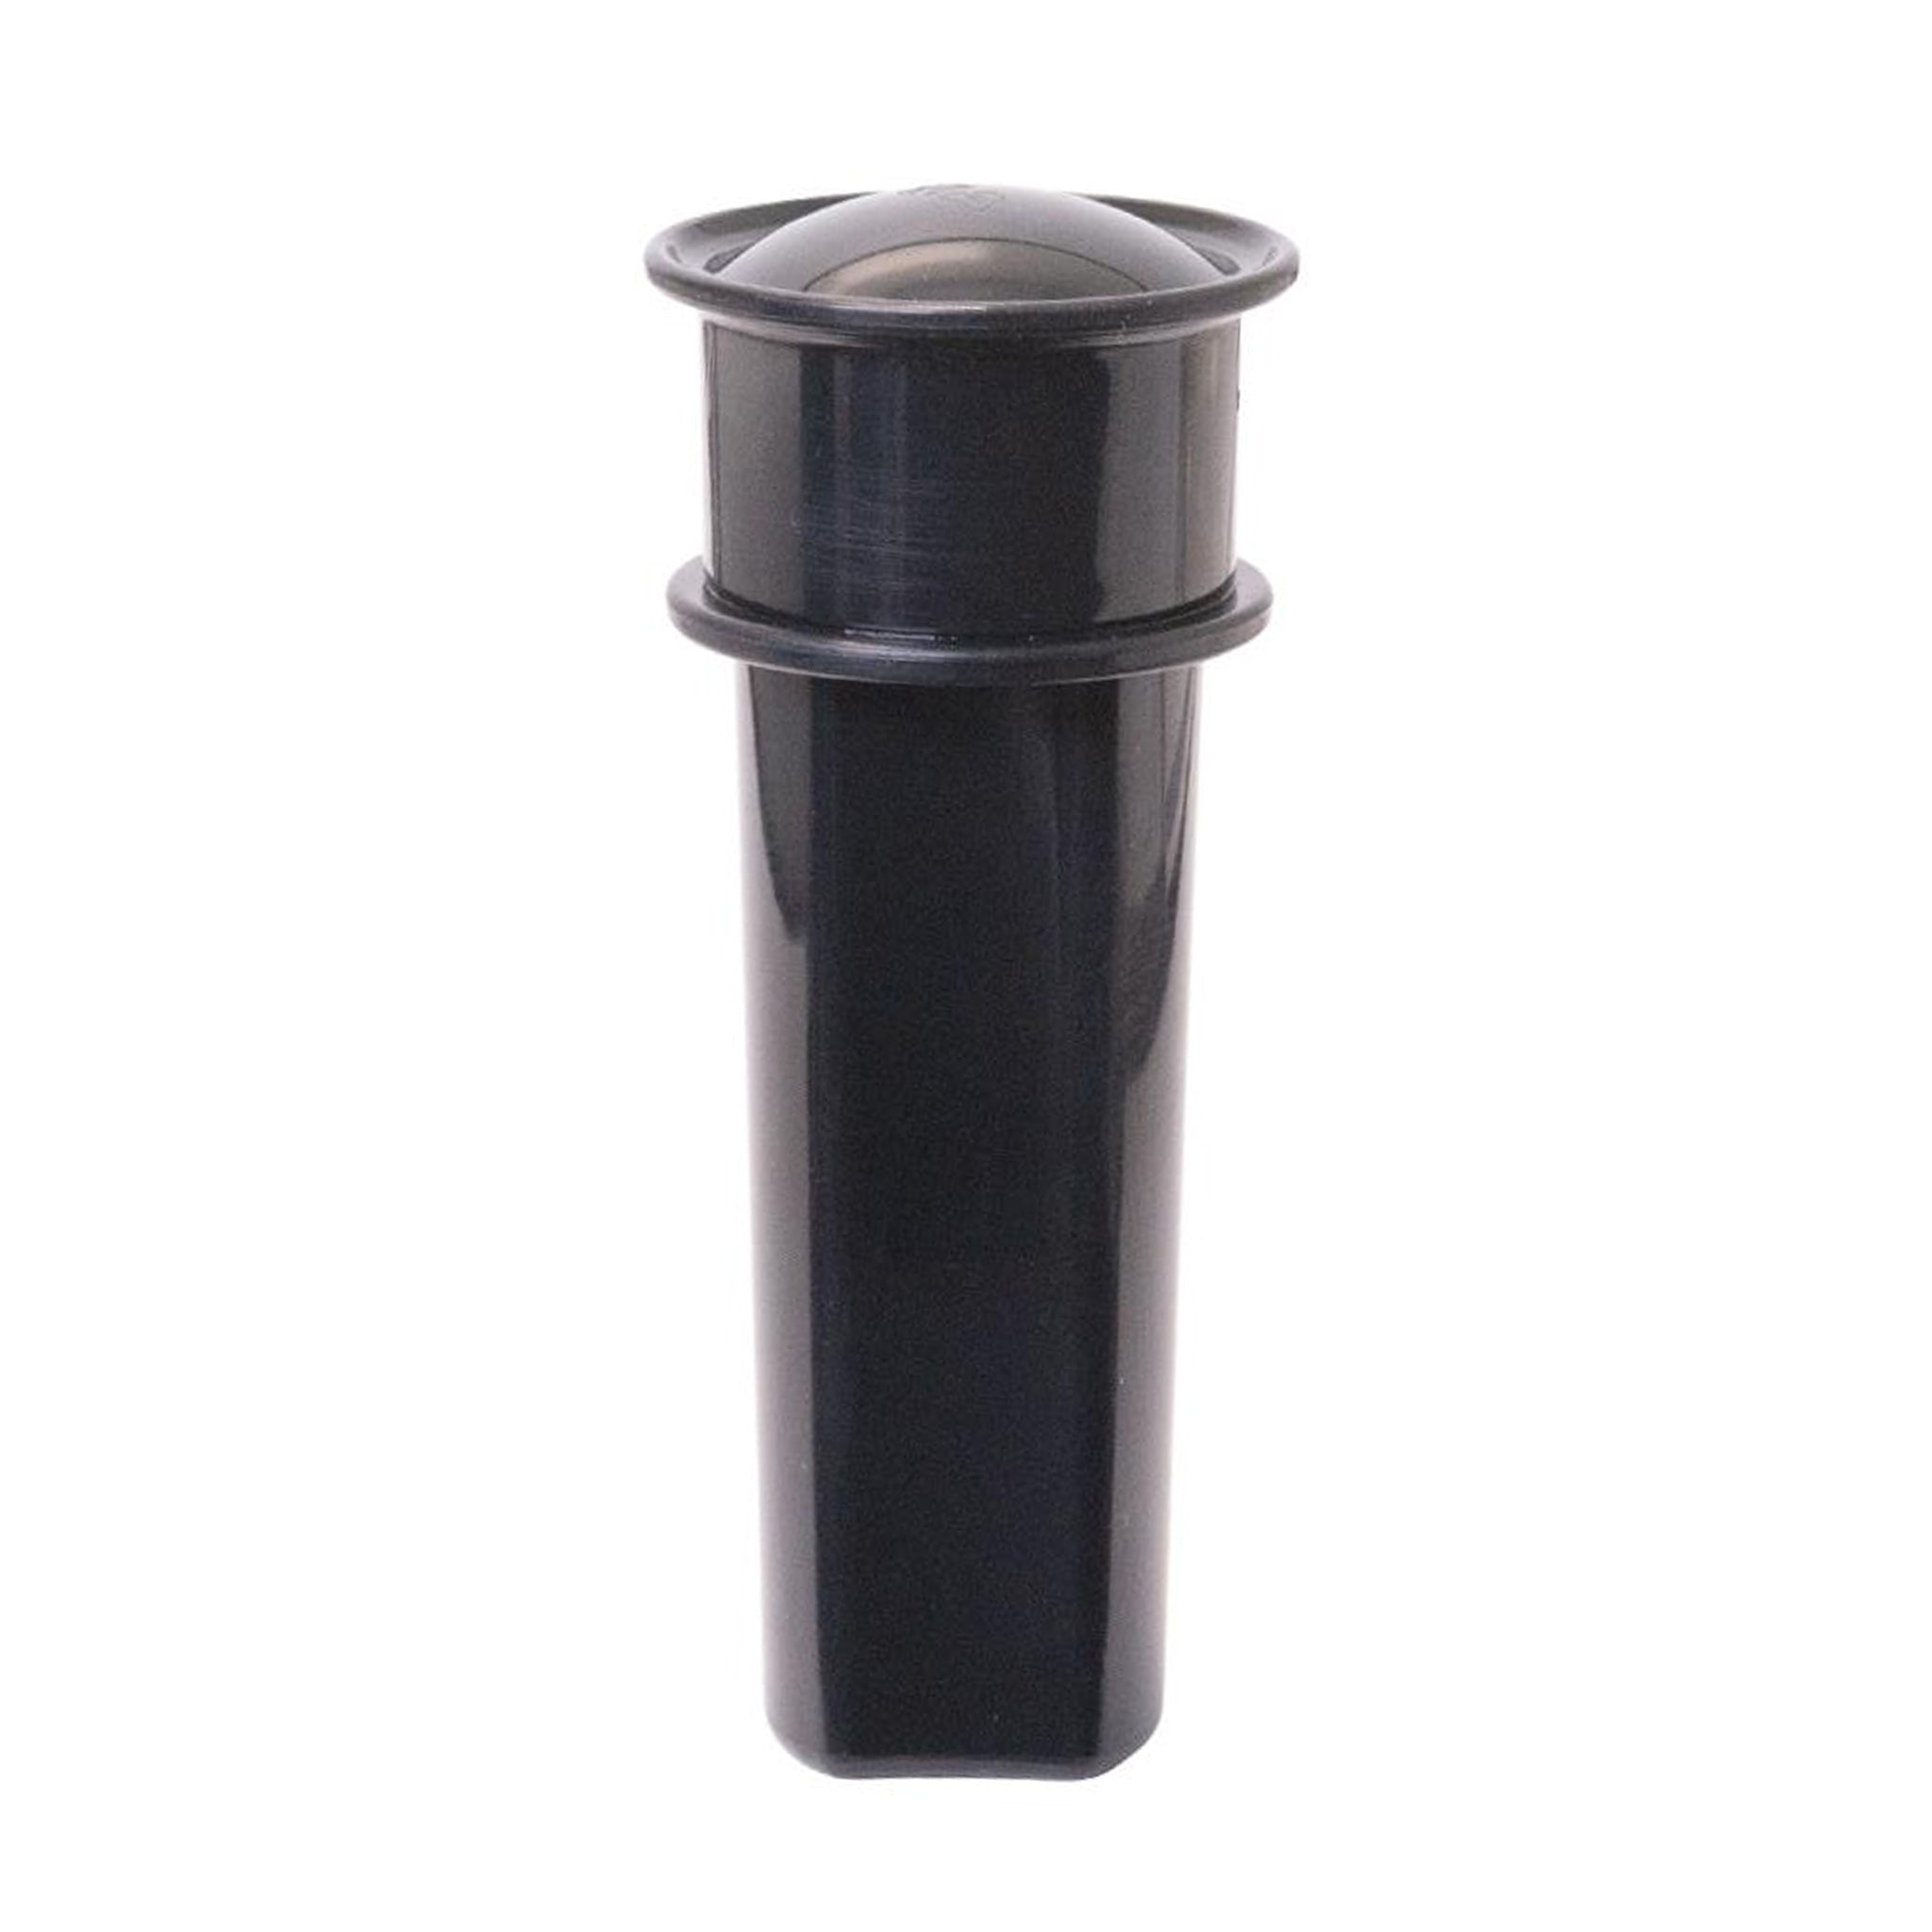 Plunger for the Shine Kitchen Co. Juicer (SJV-107-A).